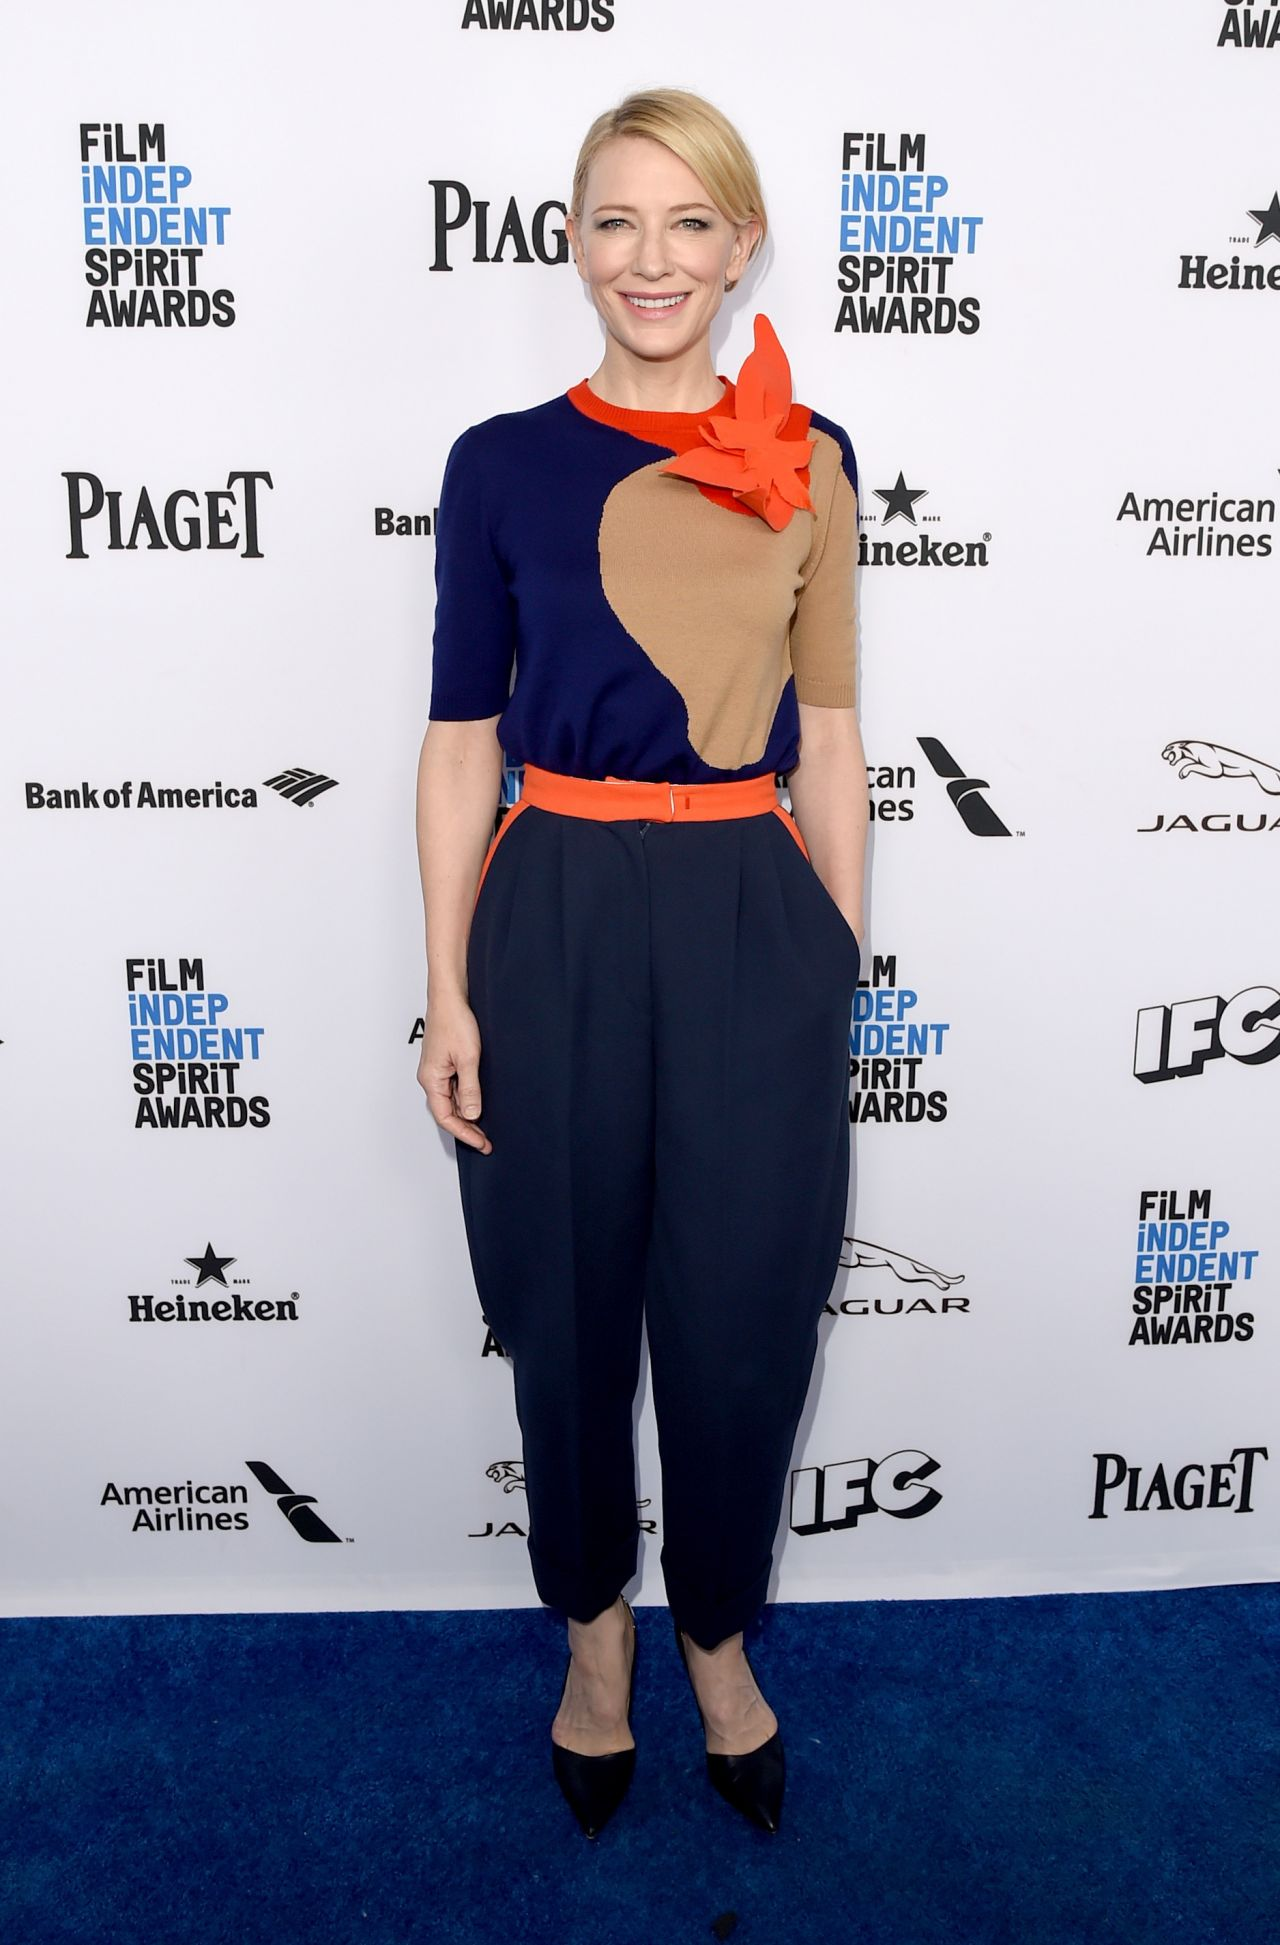 cate-blanchett-2016-film-independent-filmmaker-grant-and-spirit-award-nominees-brunch-in-west-hollywood-ca-2